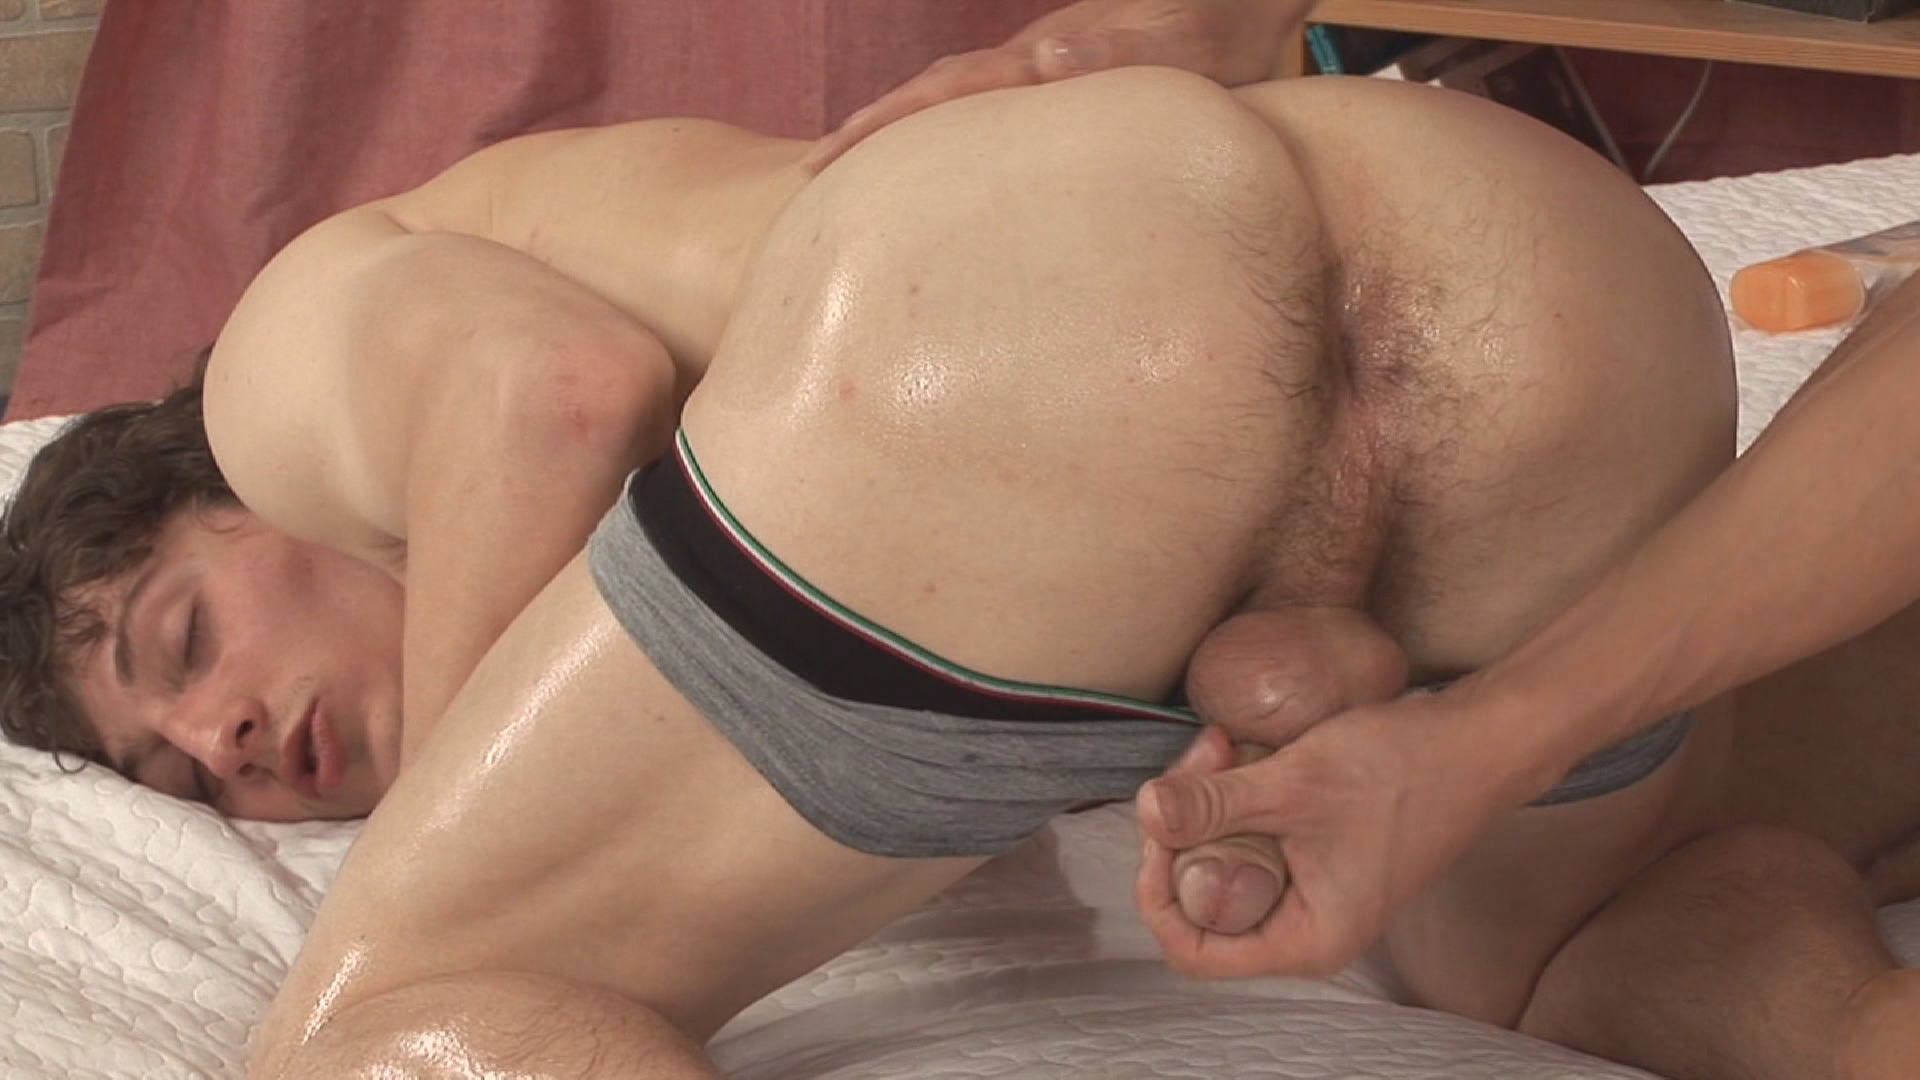 xvideos vom porno gay escort